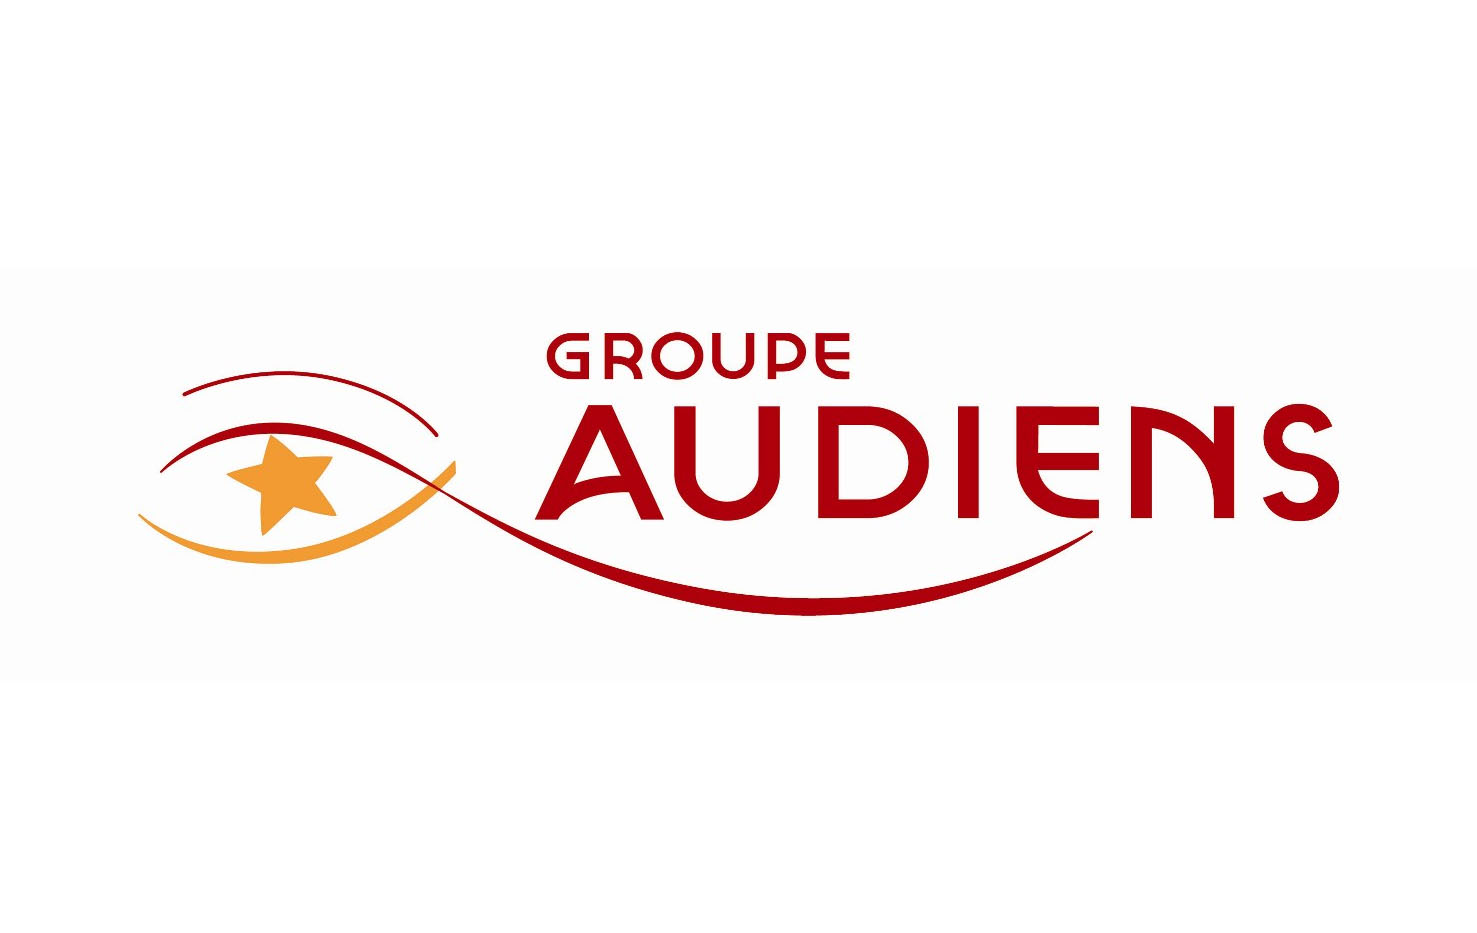 Groupement Audiens Investure